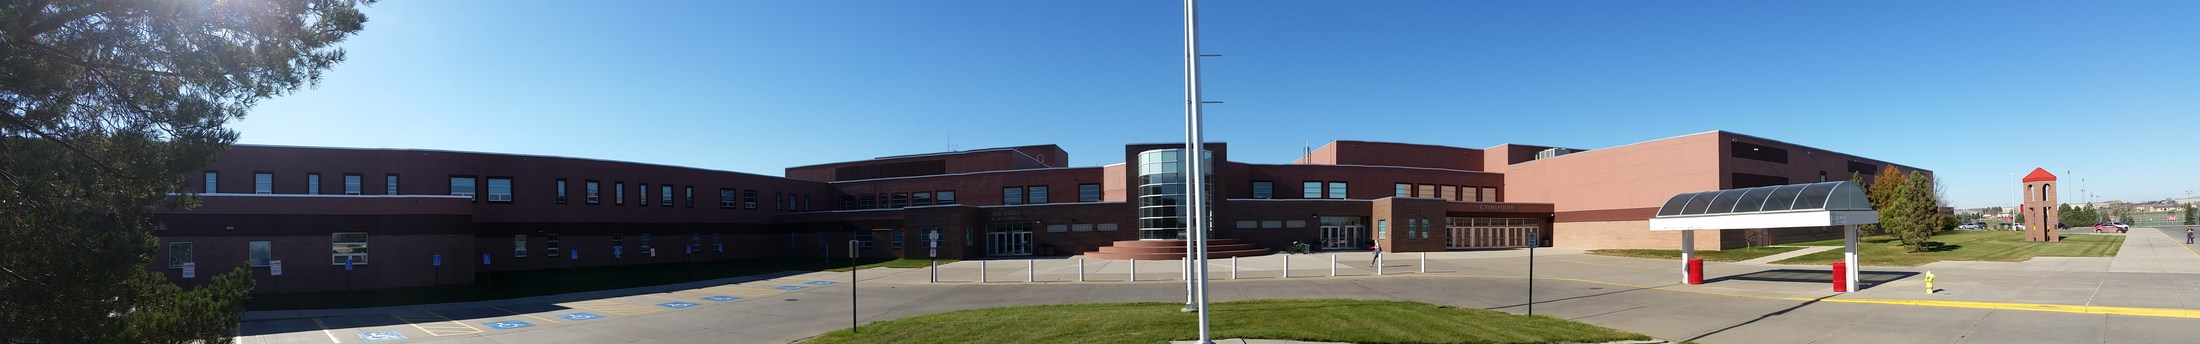 Front of Yankton High School 2016